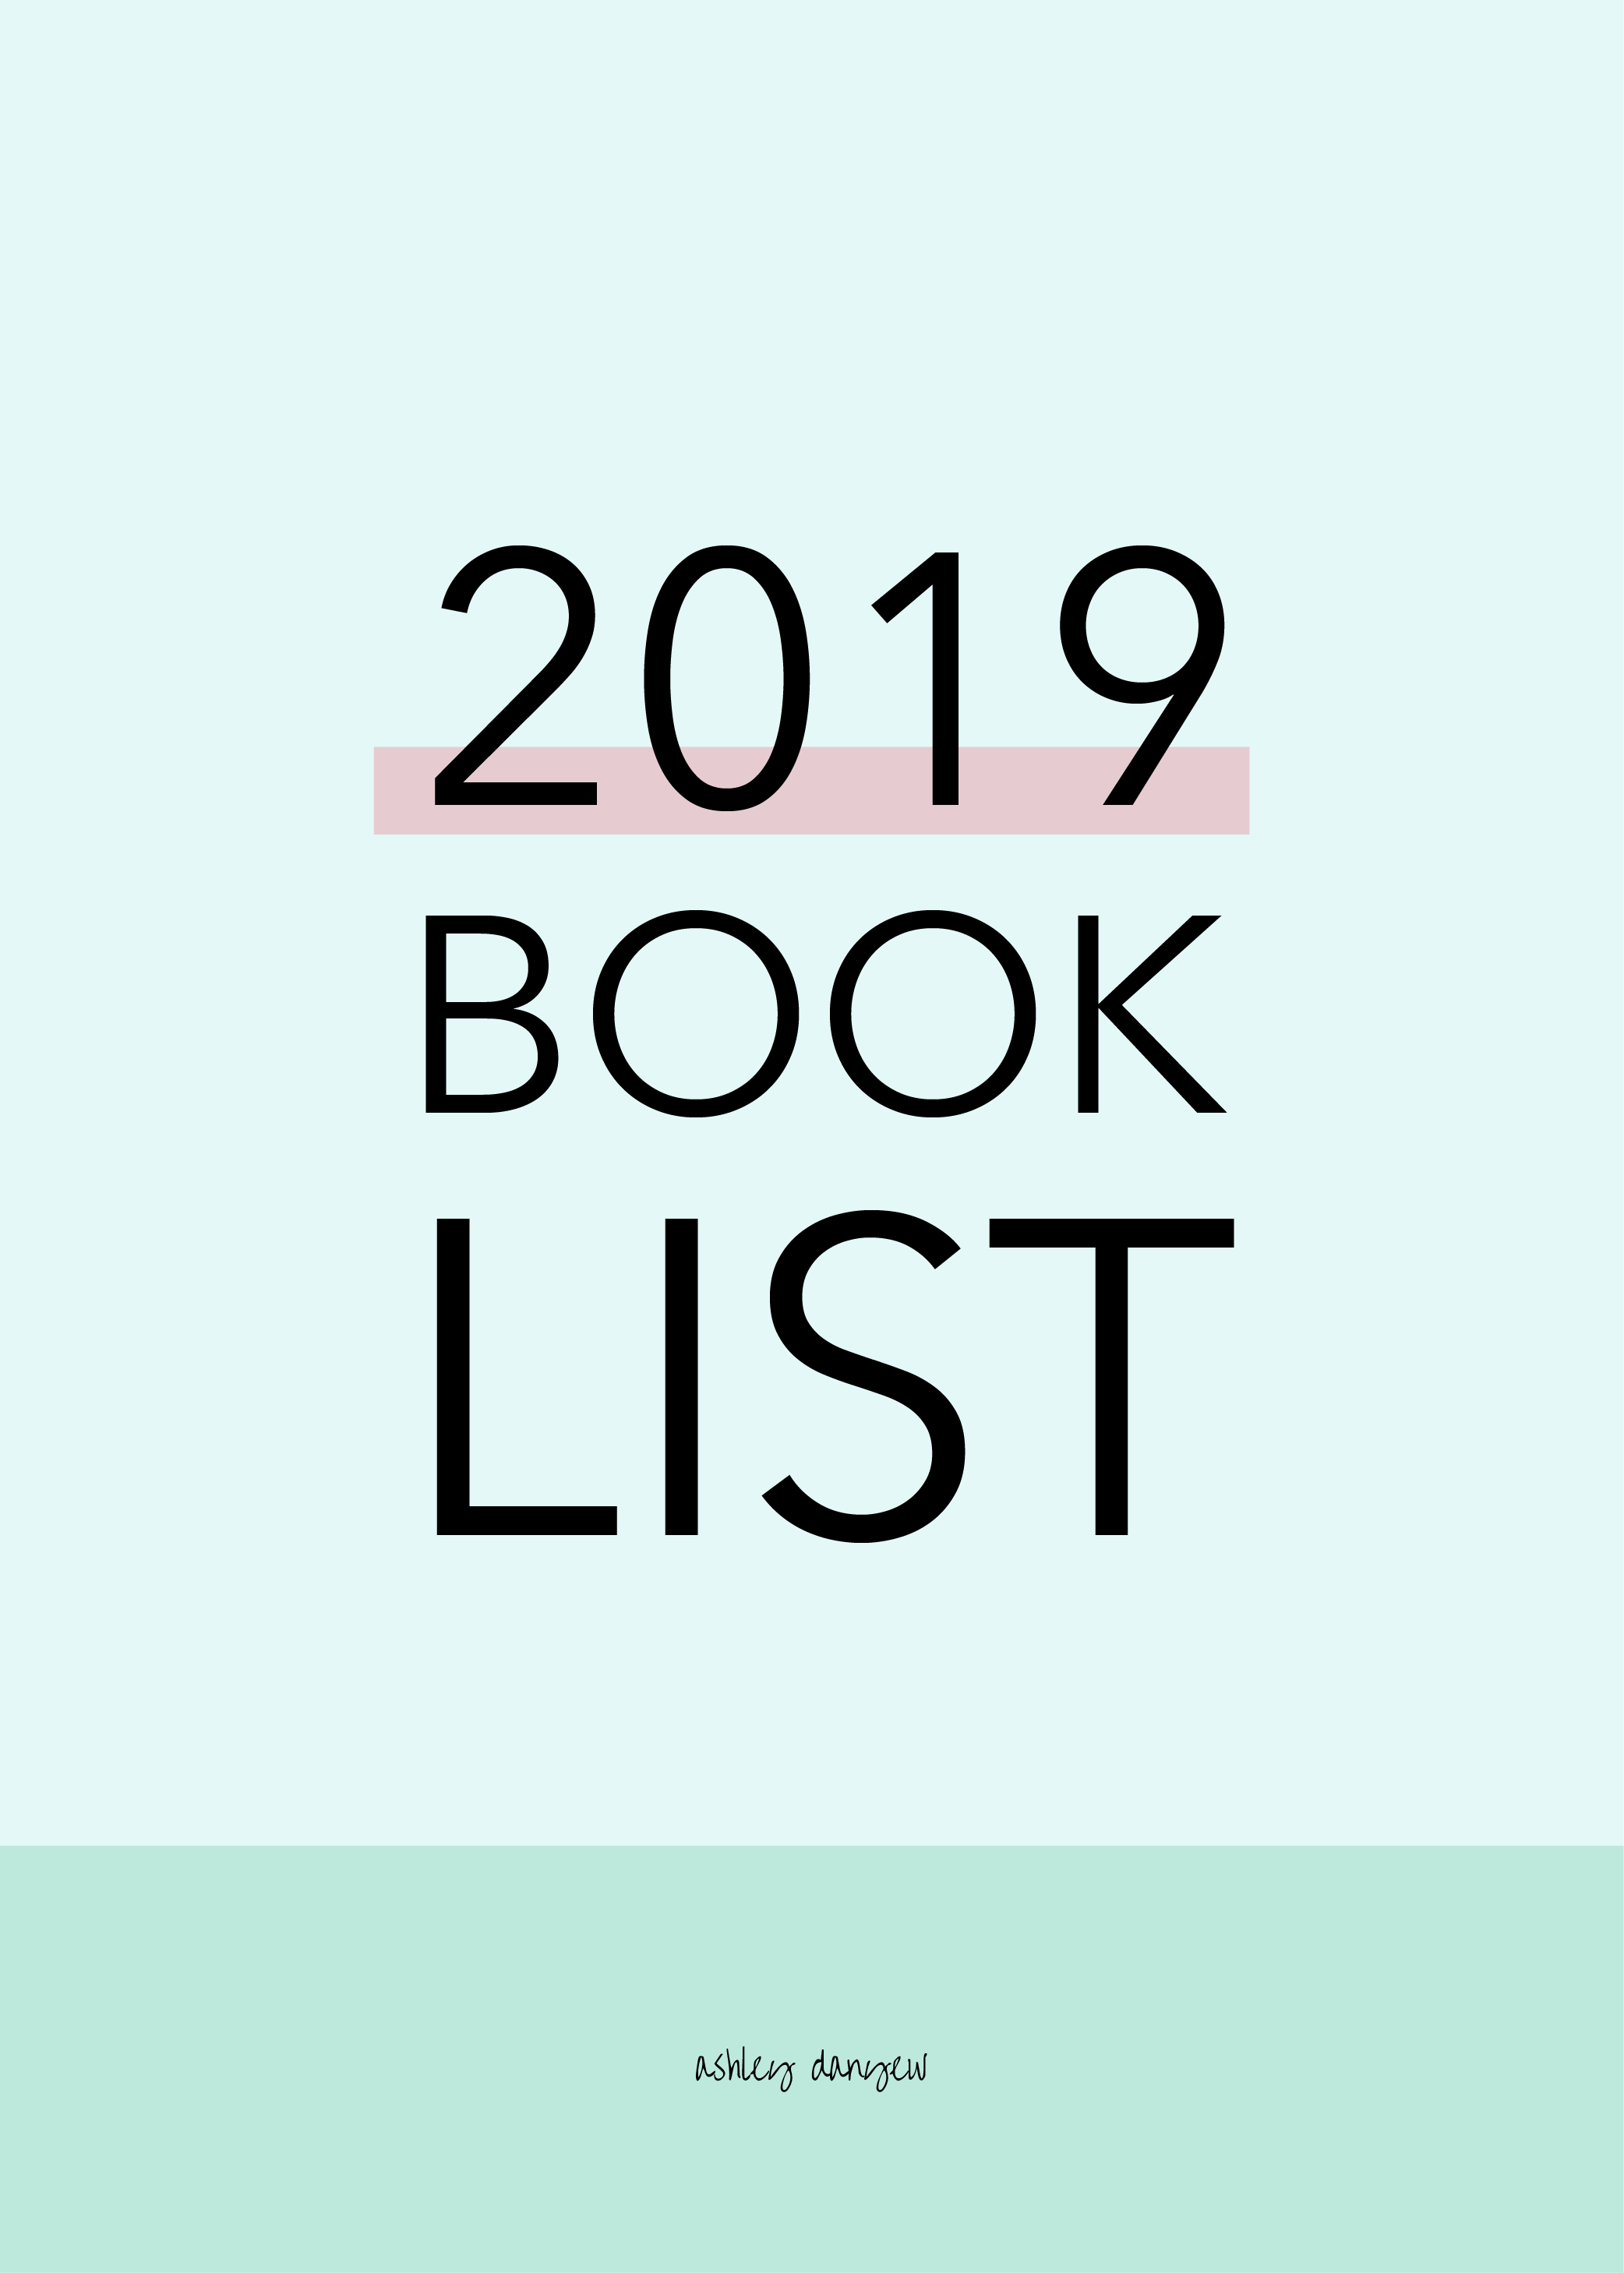 2019 Book List-01.png